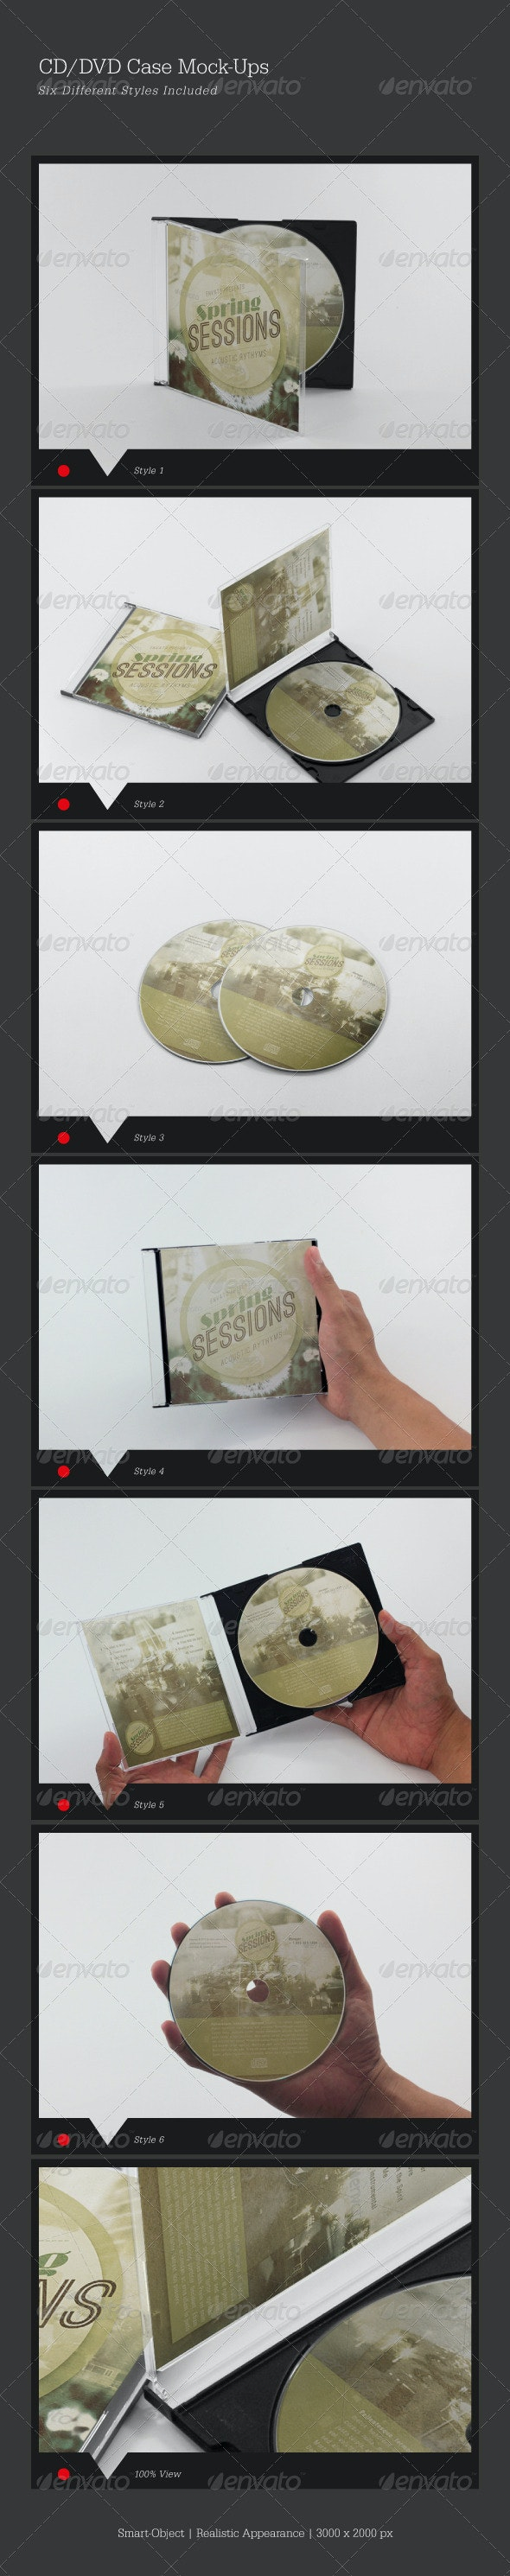 CD/DVD Cover Mock-Ups - Miscellaneous Product Mock-Ups